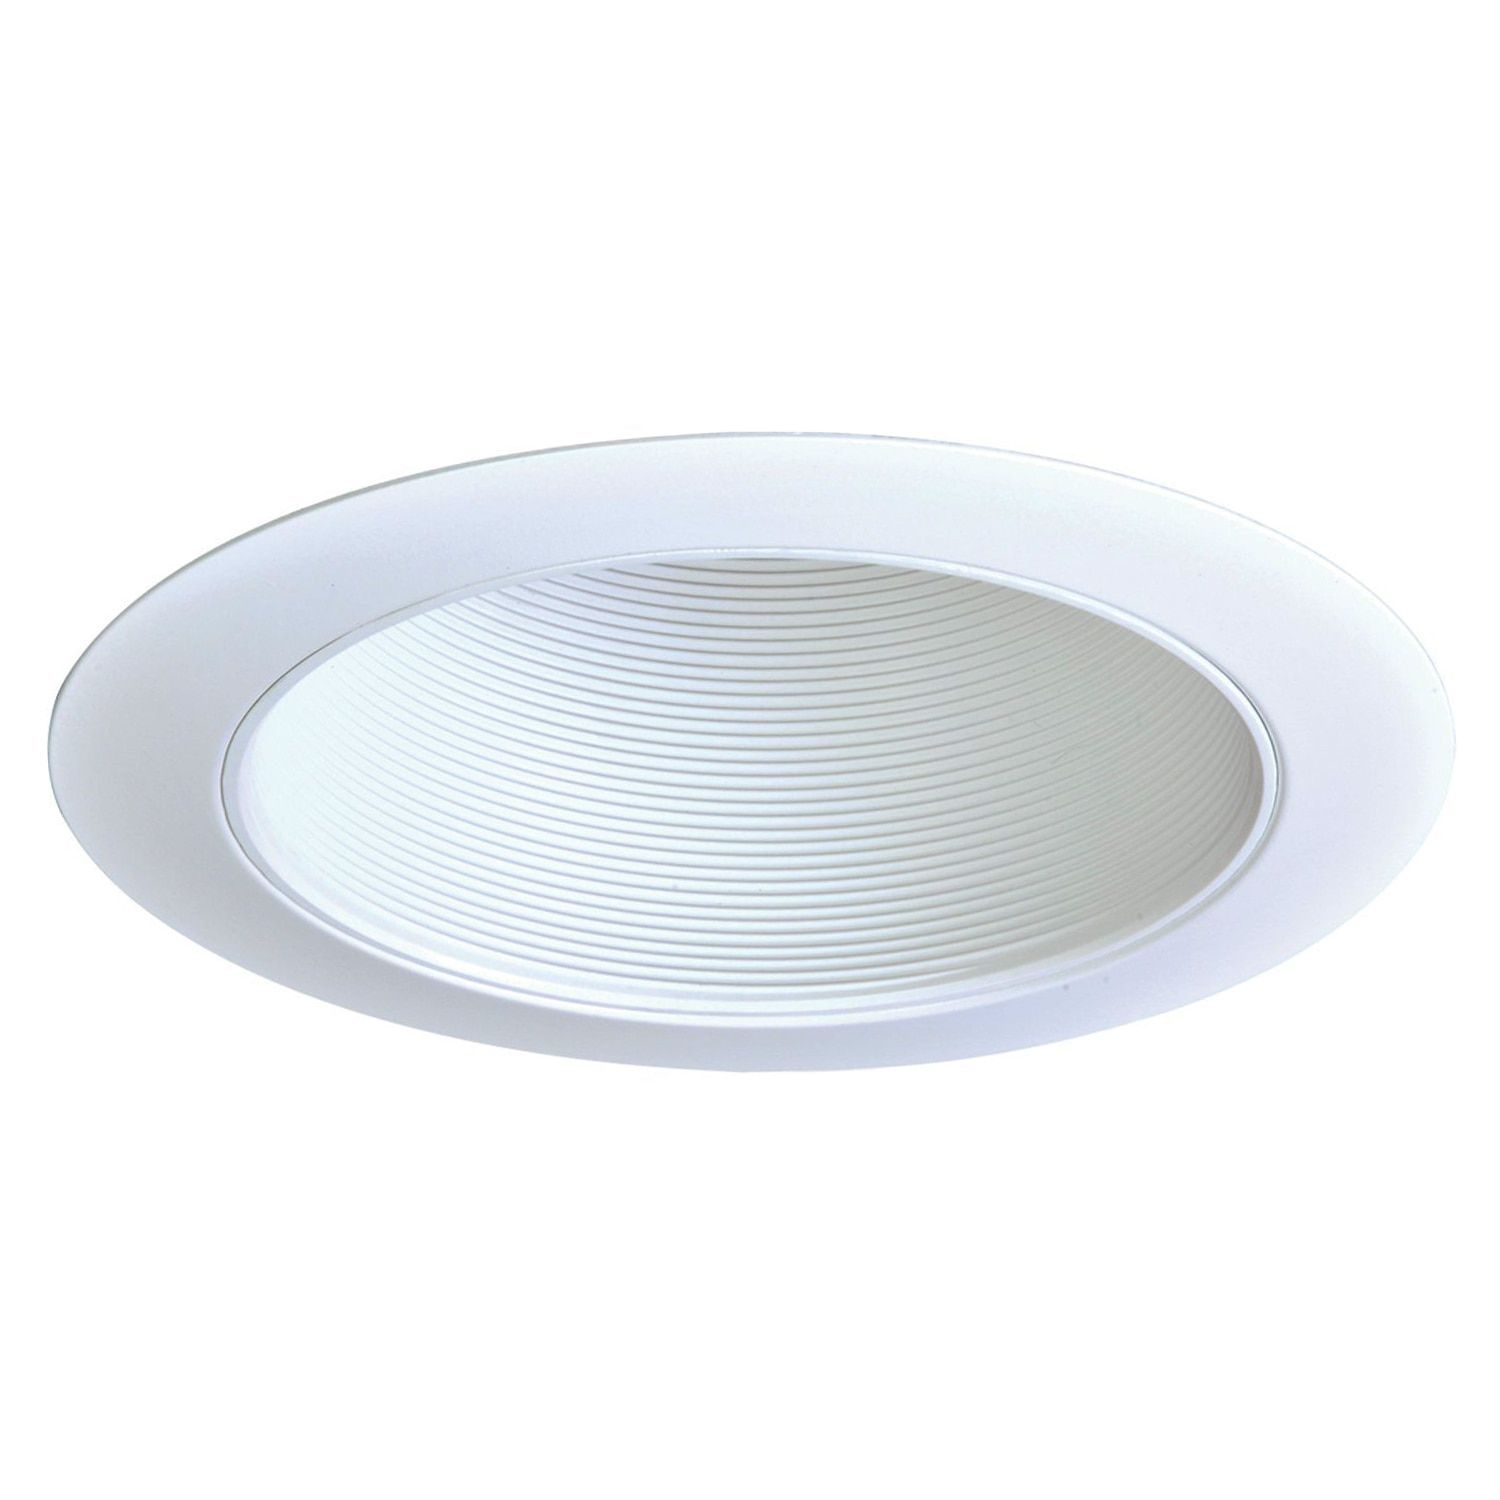 Halo recessed lighting 310w white recessed light fixture trim 75 halo recessed lighting 310w white recessed light fixture trim 75 watt lights black aloadofball Image collections